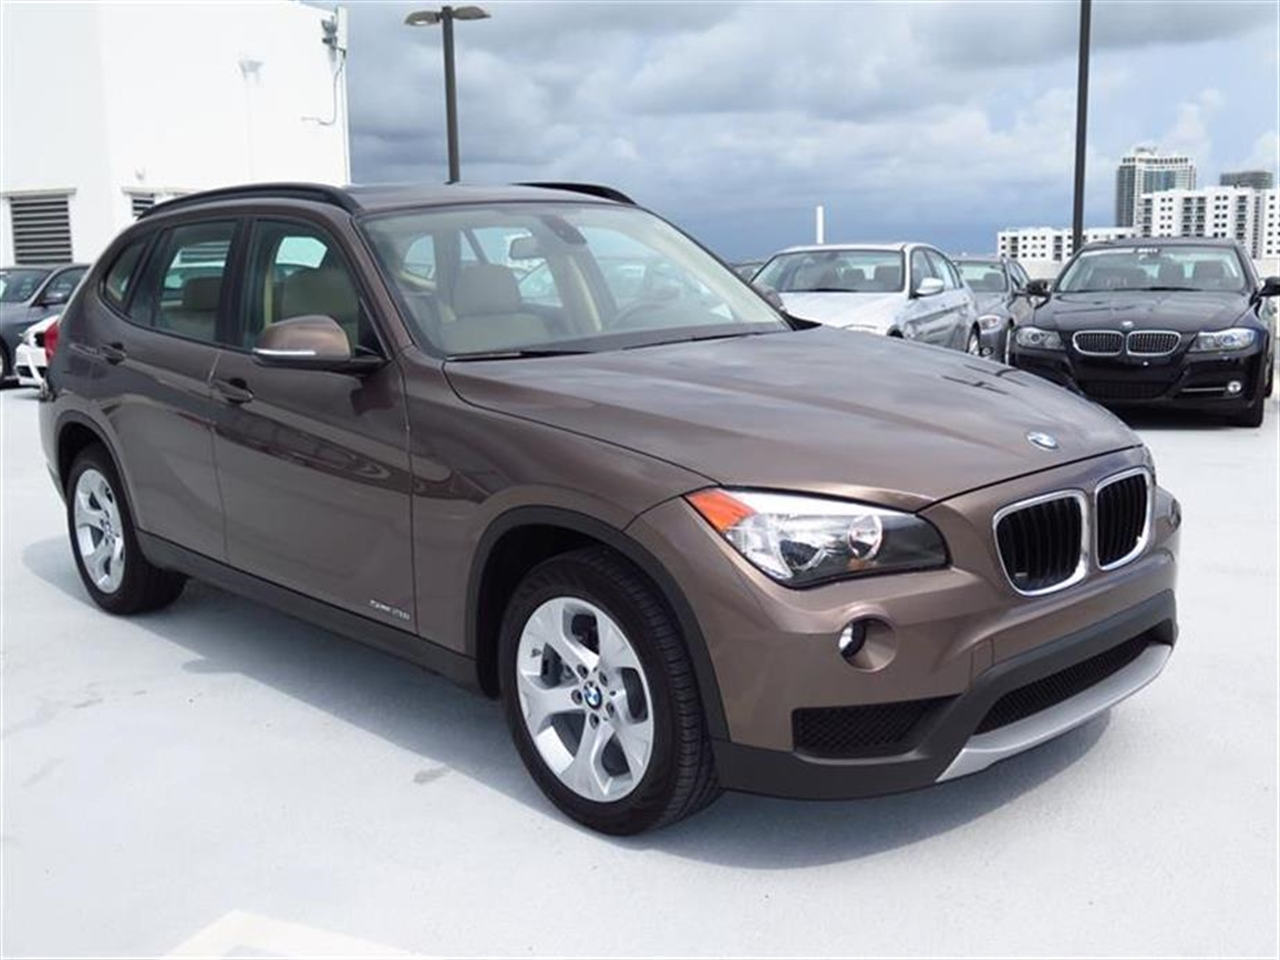 2014 BMW X1 RWD 4dr sDrive28i 1392 miles 2 Seatback Storage Pockets 3 12V DC Power Outlets LEATH